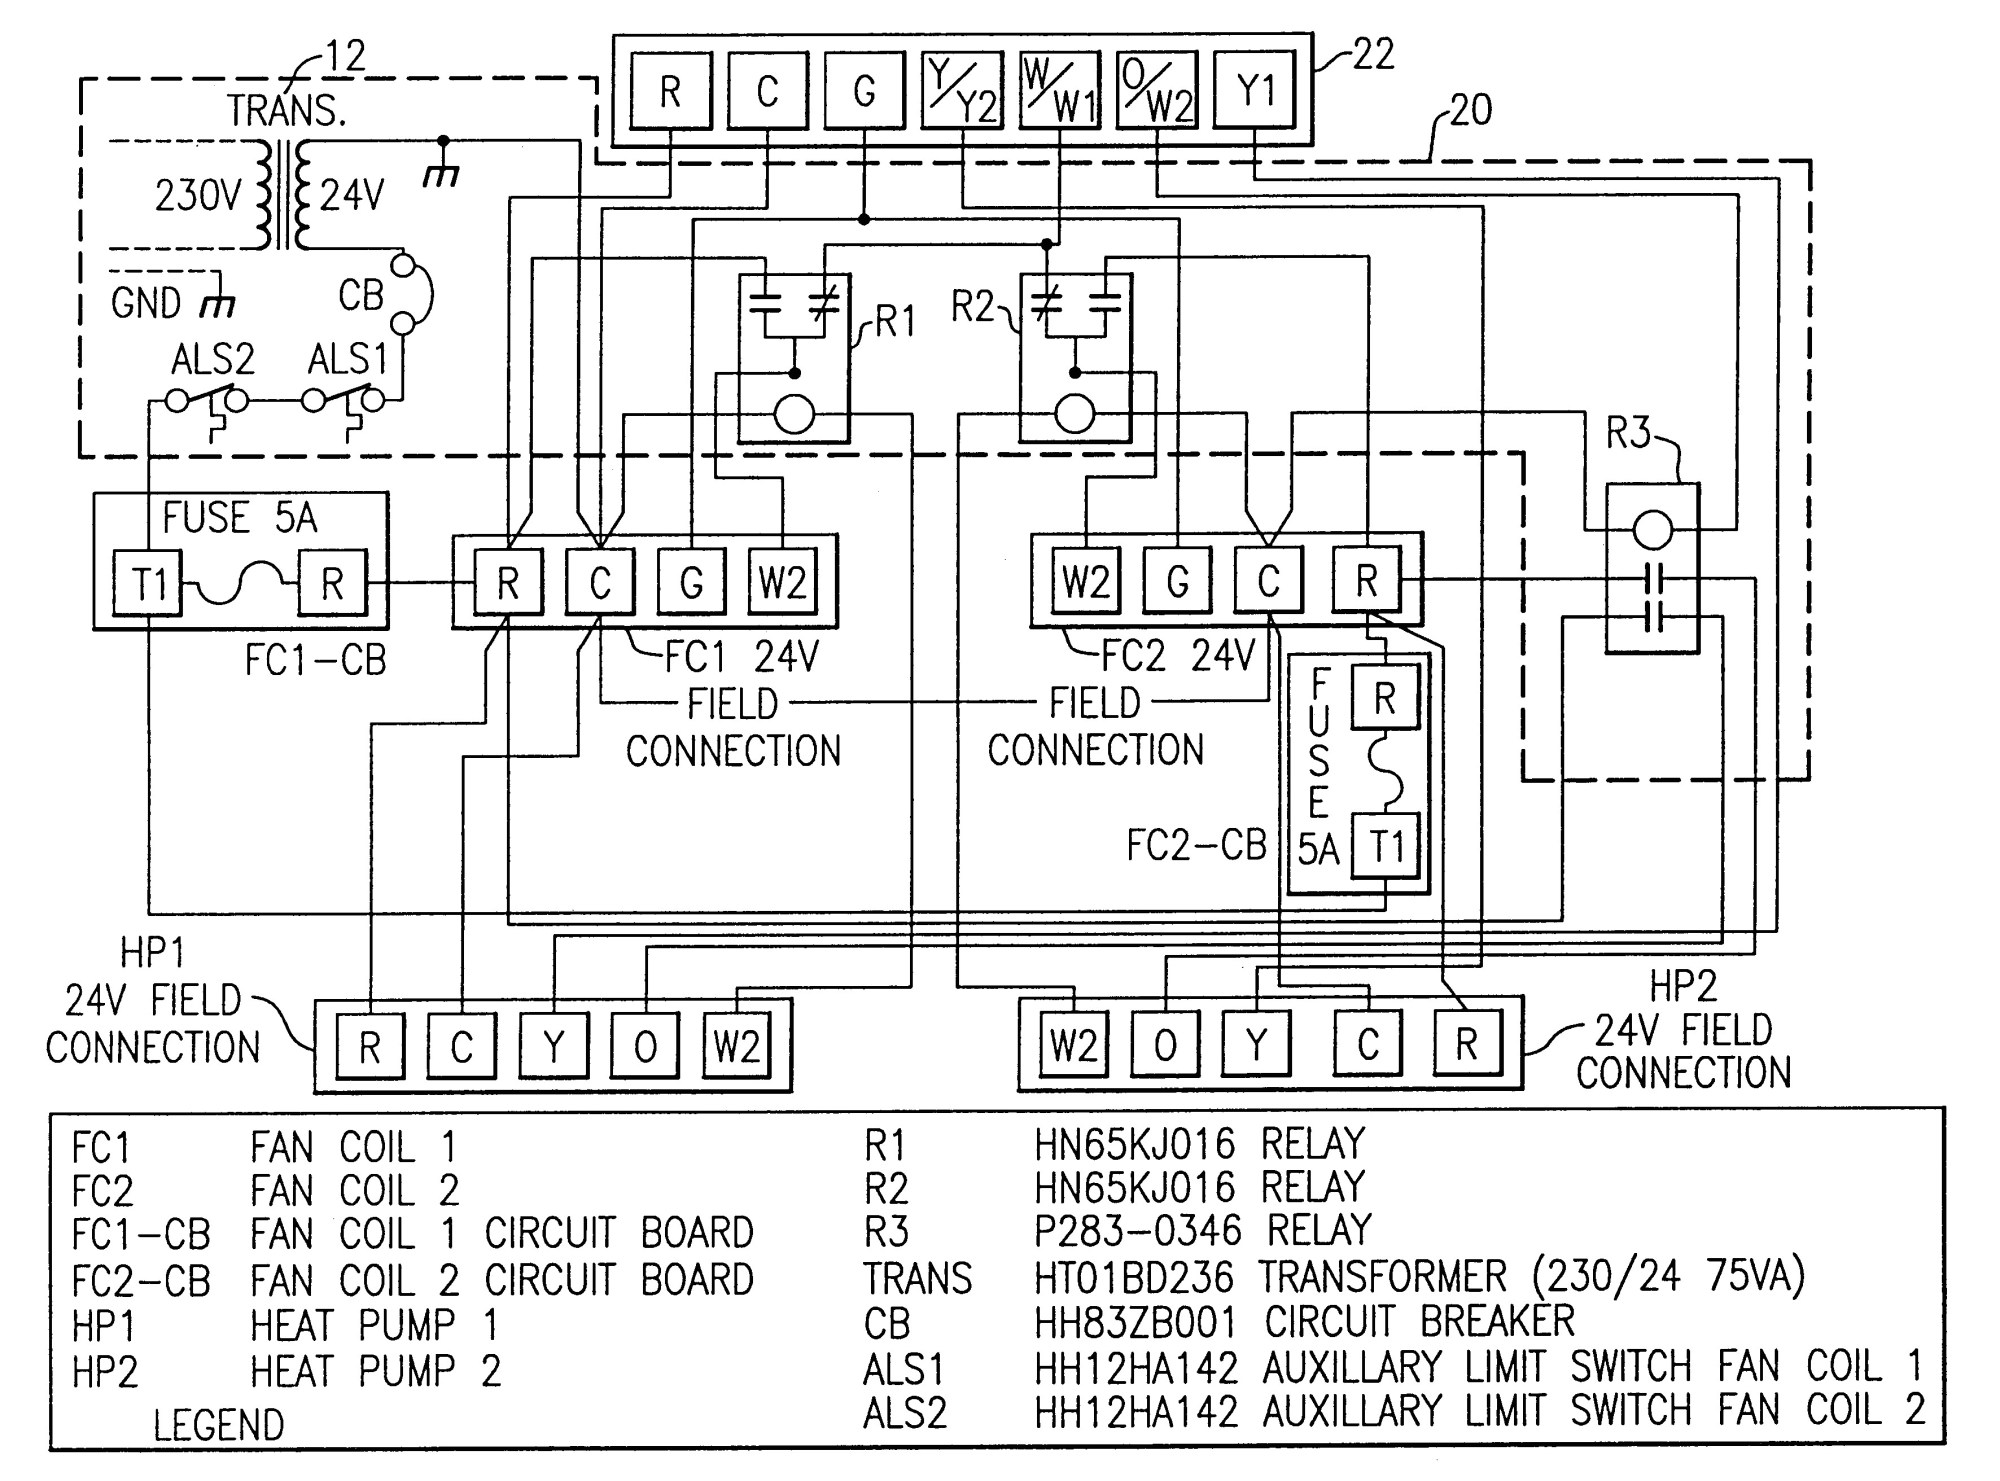 hight resolution of carrier infinity touch thermostat installation manual carrier heating thermostat wiring diagram free download wiring diagram